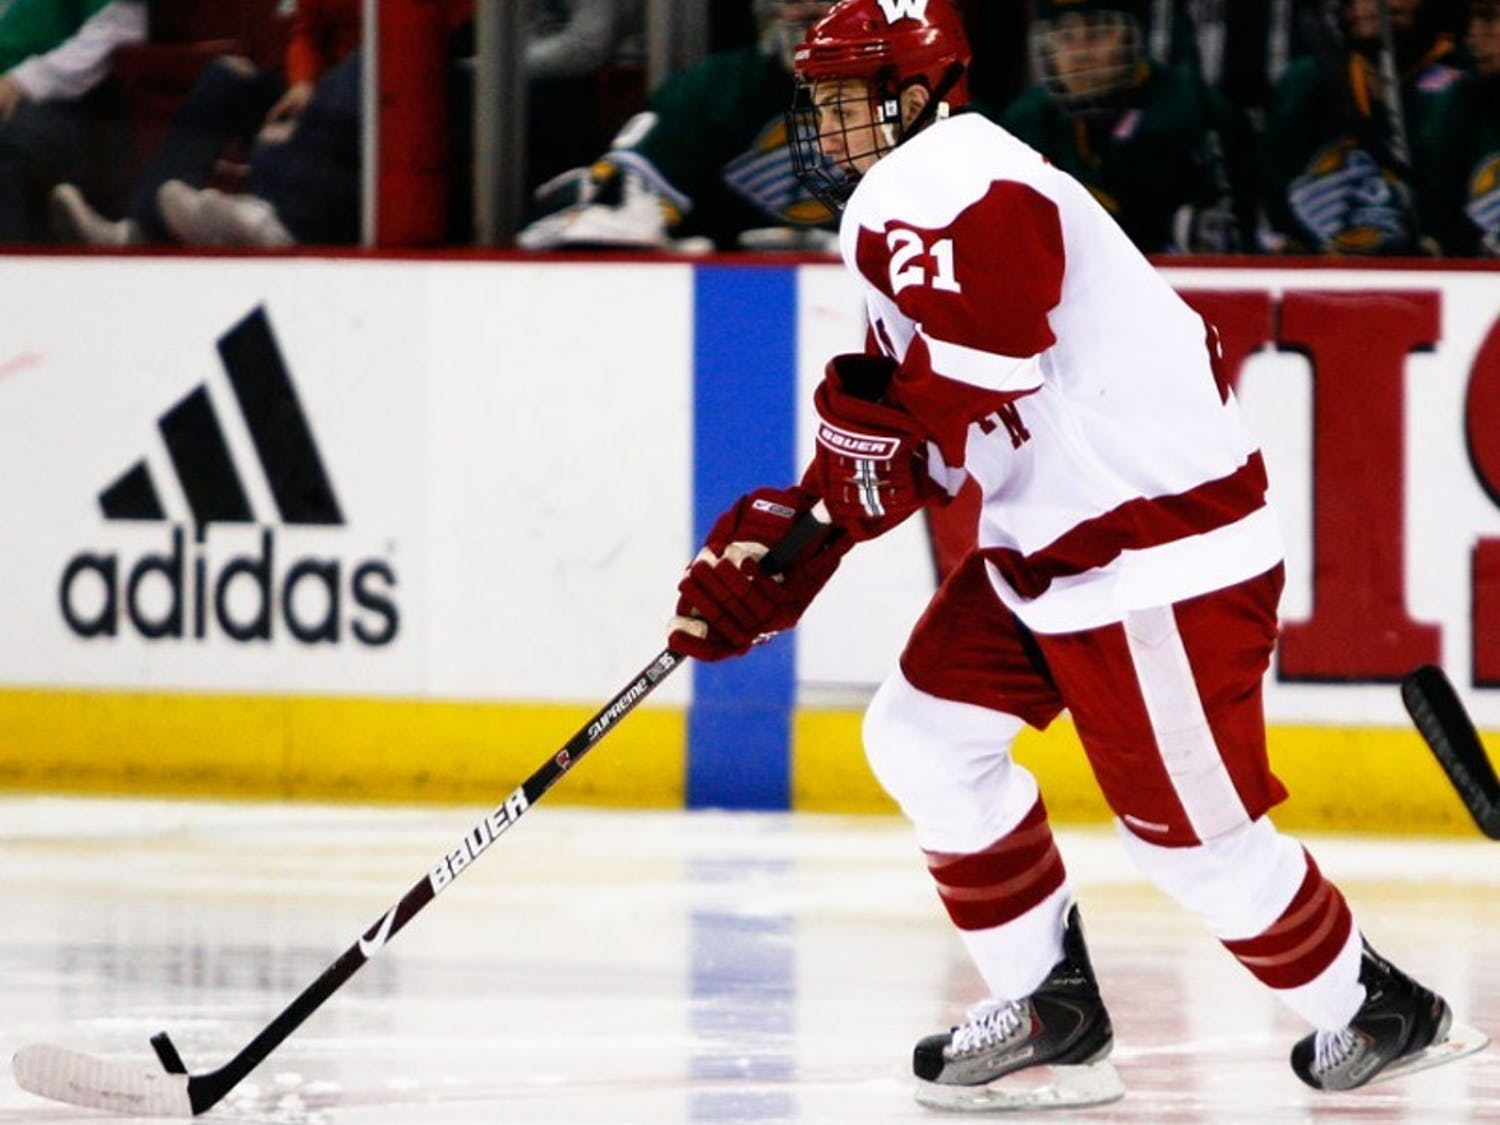 Badgers return home with chance to pick up points